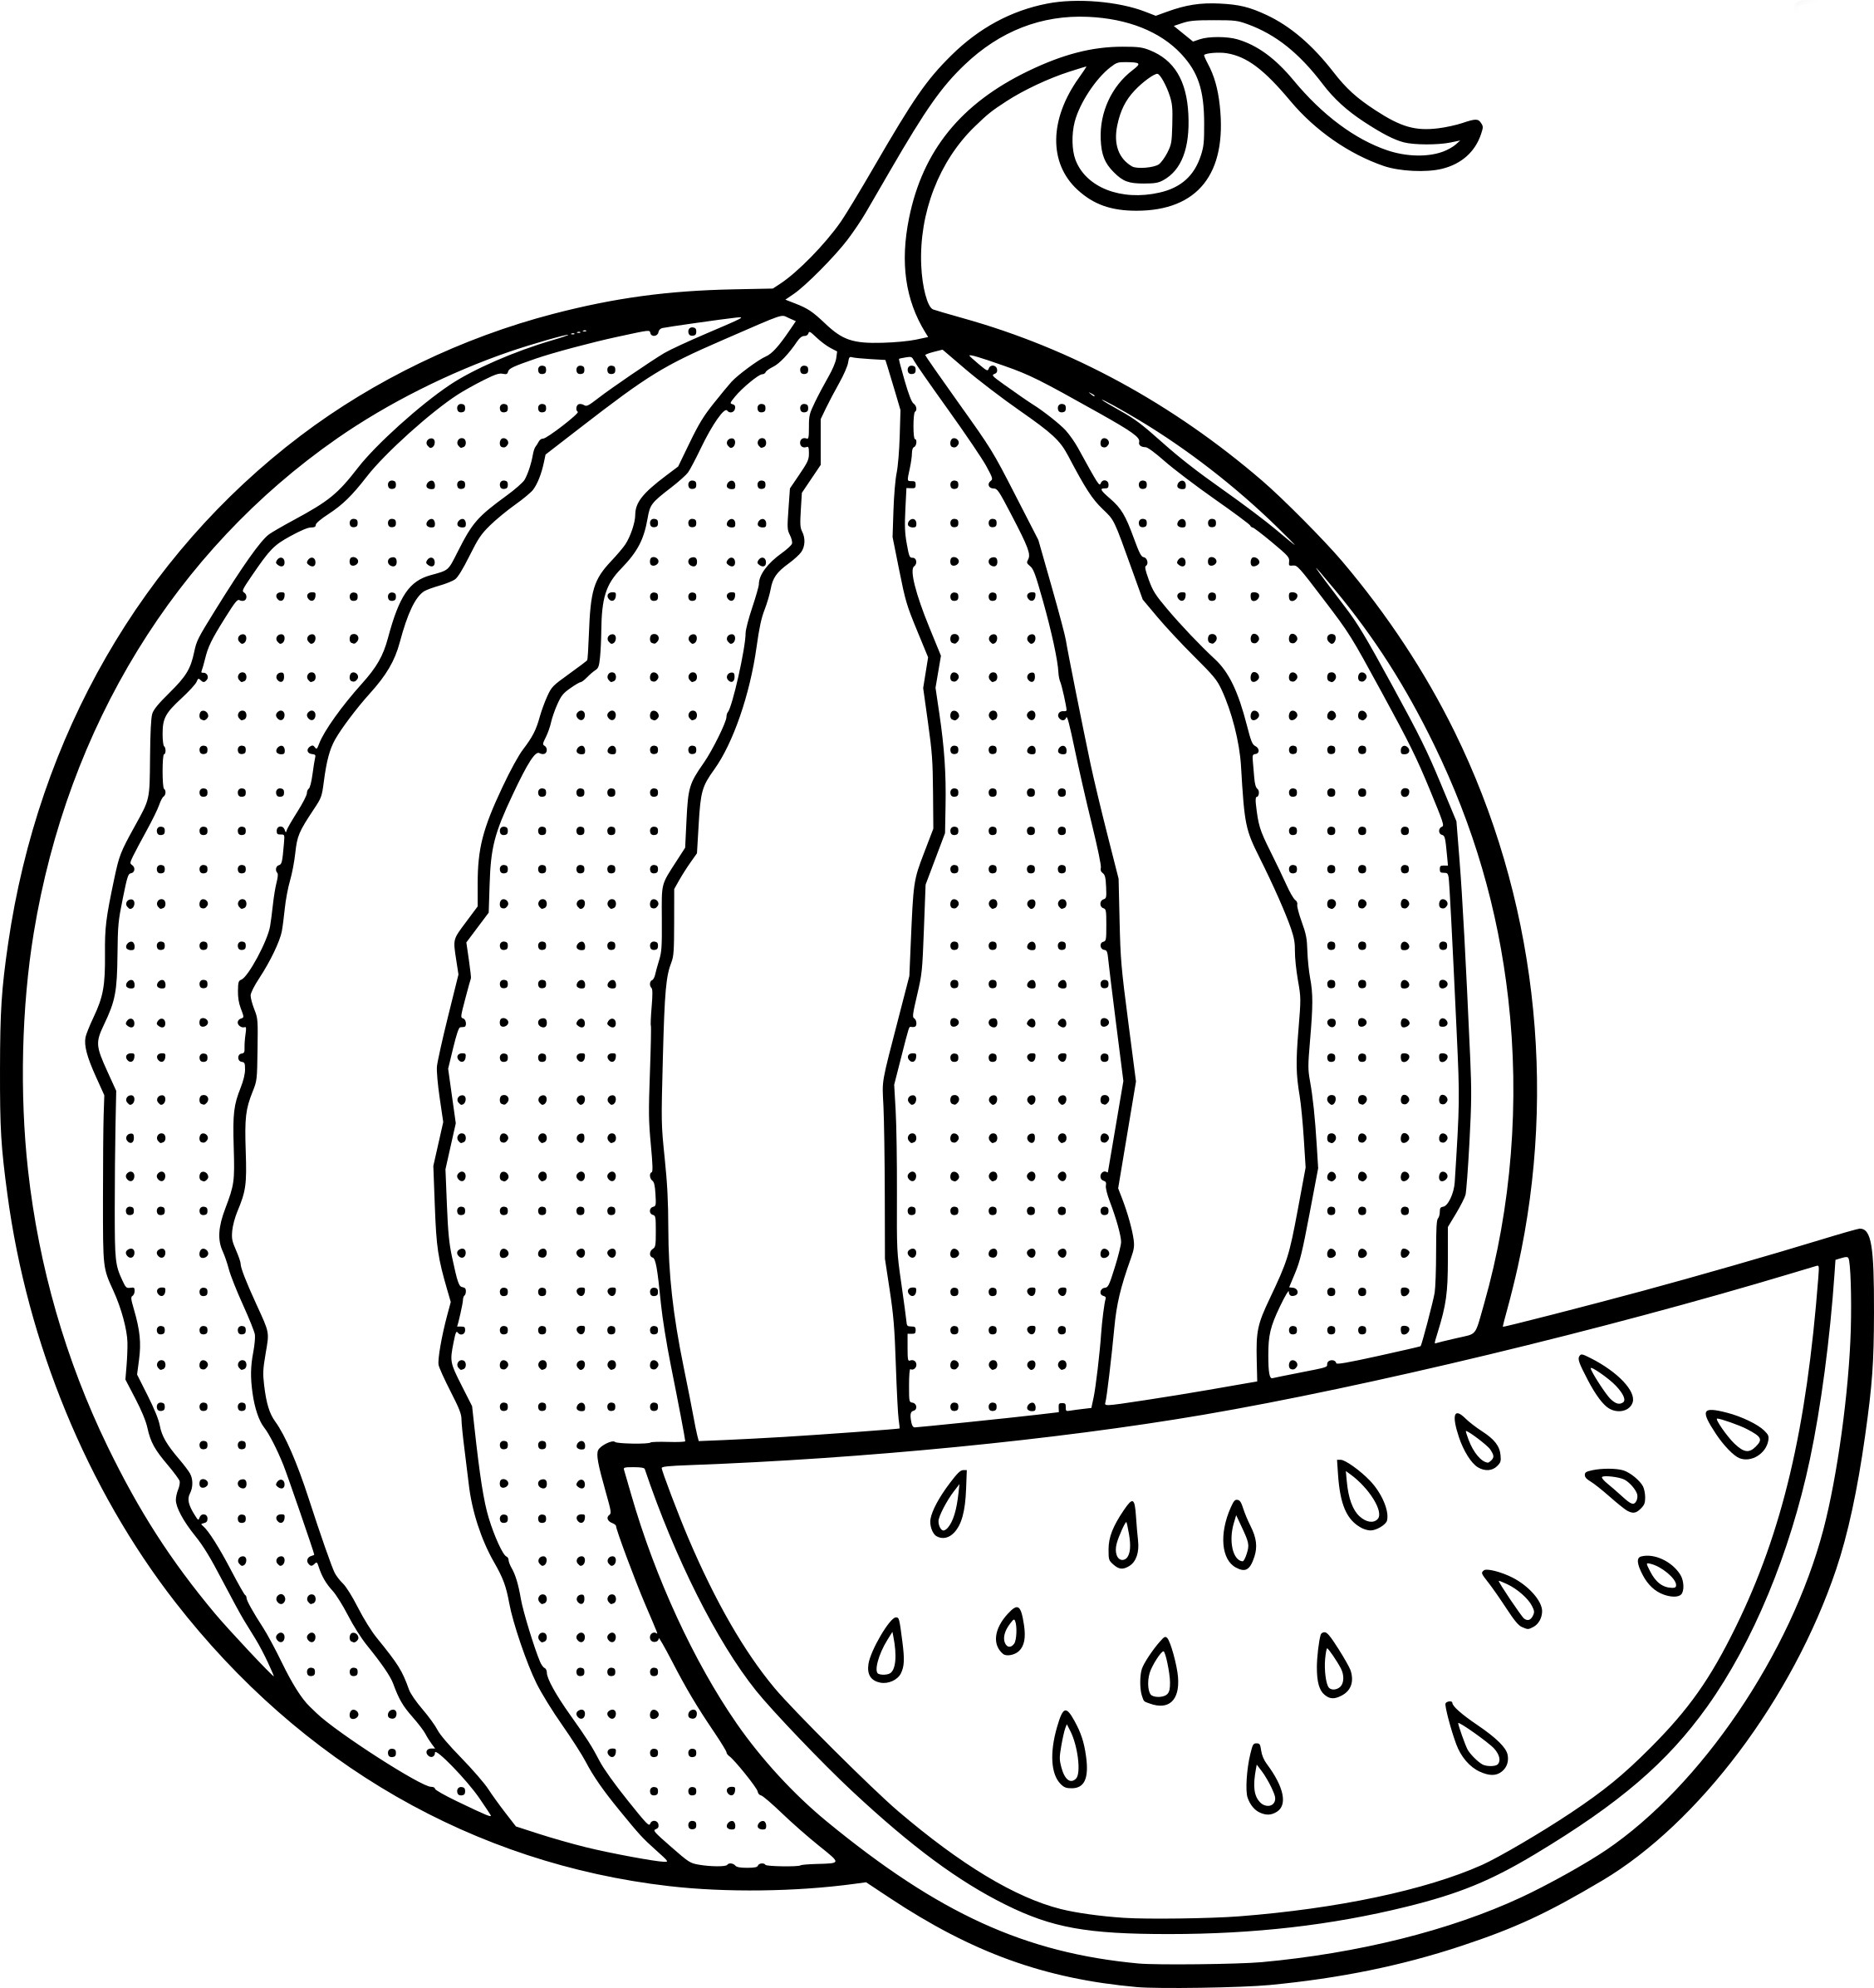 coloring pages watermelon cute watermelon coloring pages vingel pages coloring watermelon